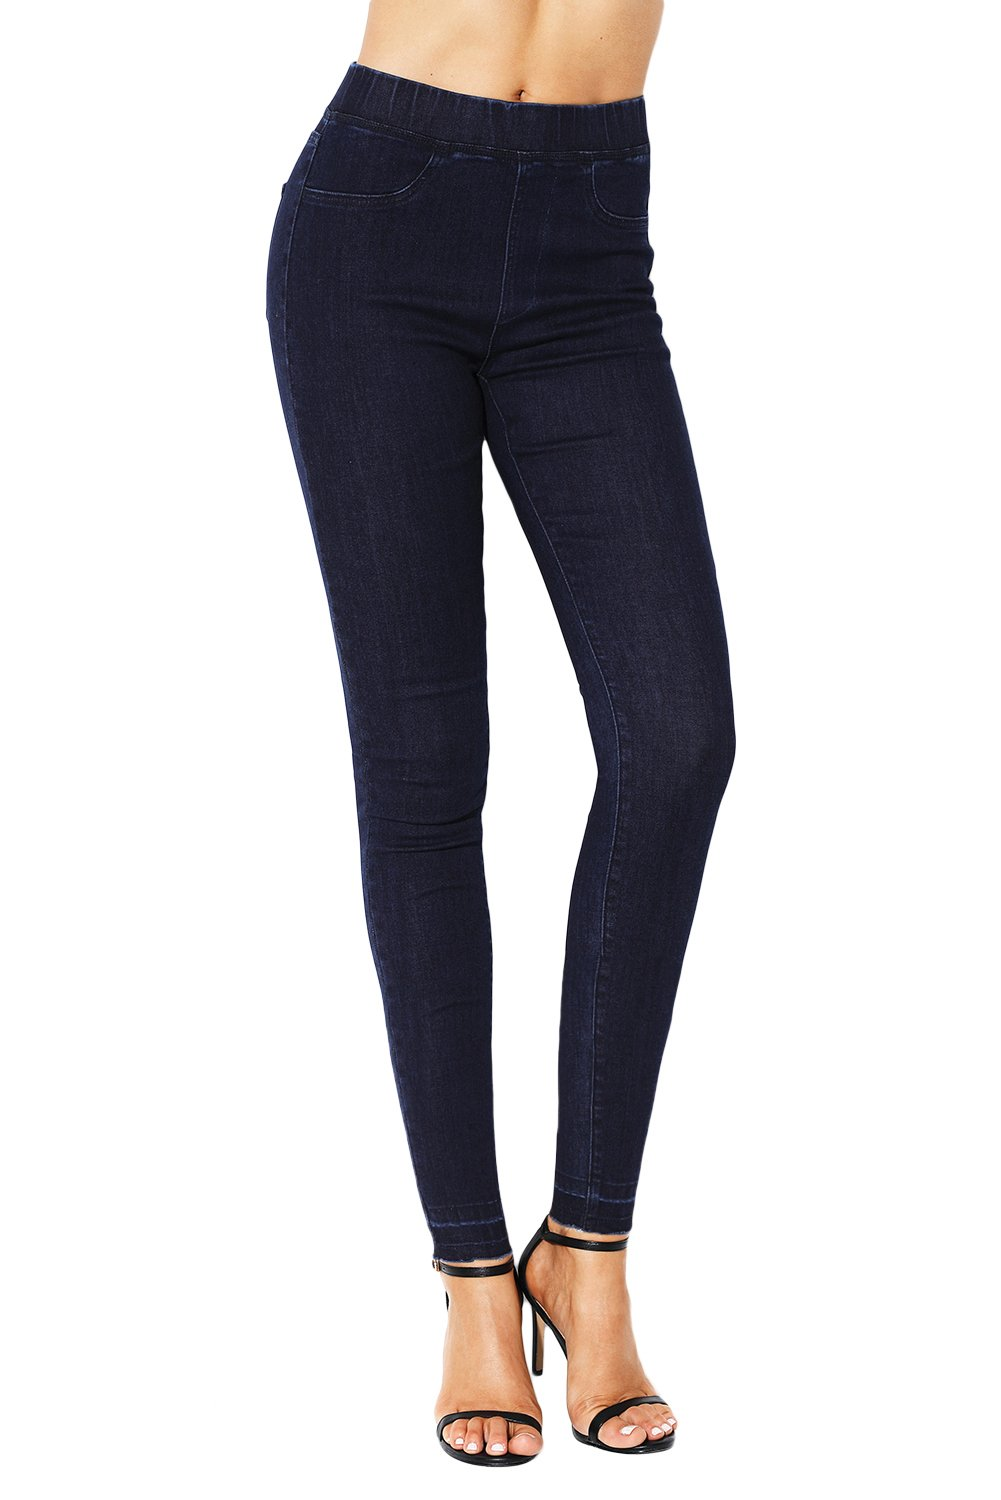 Navy Blue Elastic Waist Jeans Stretch Pants